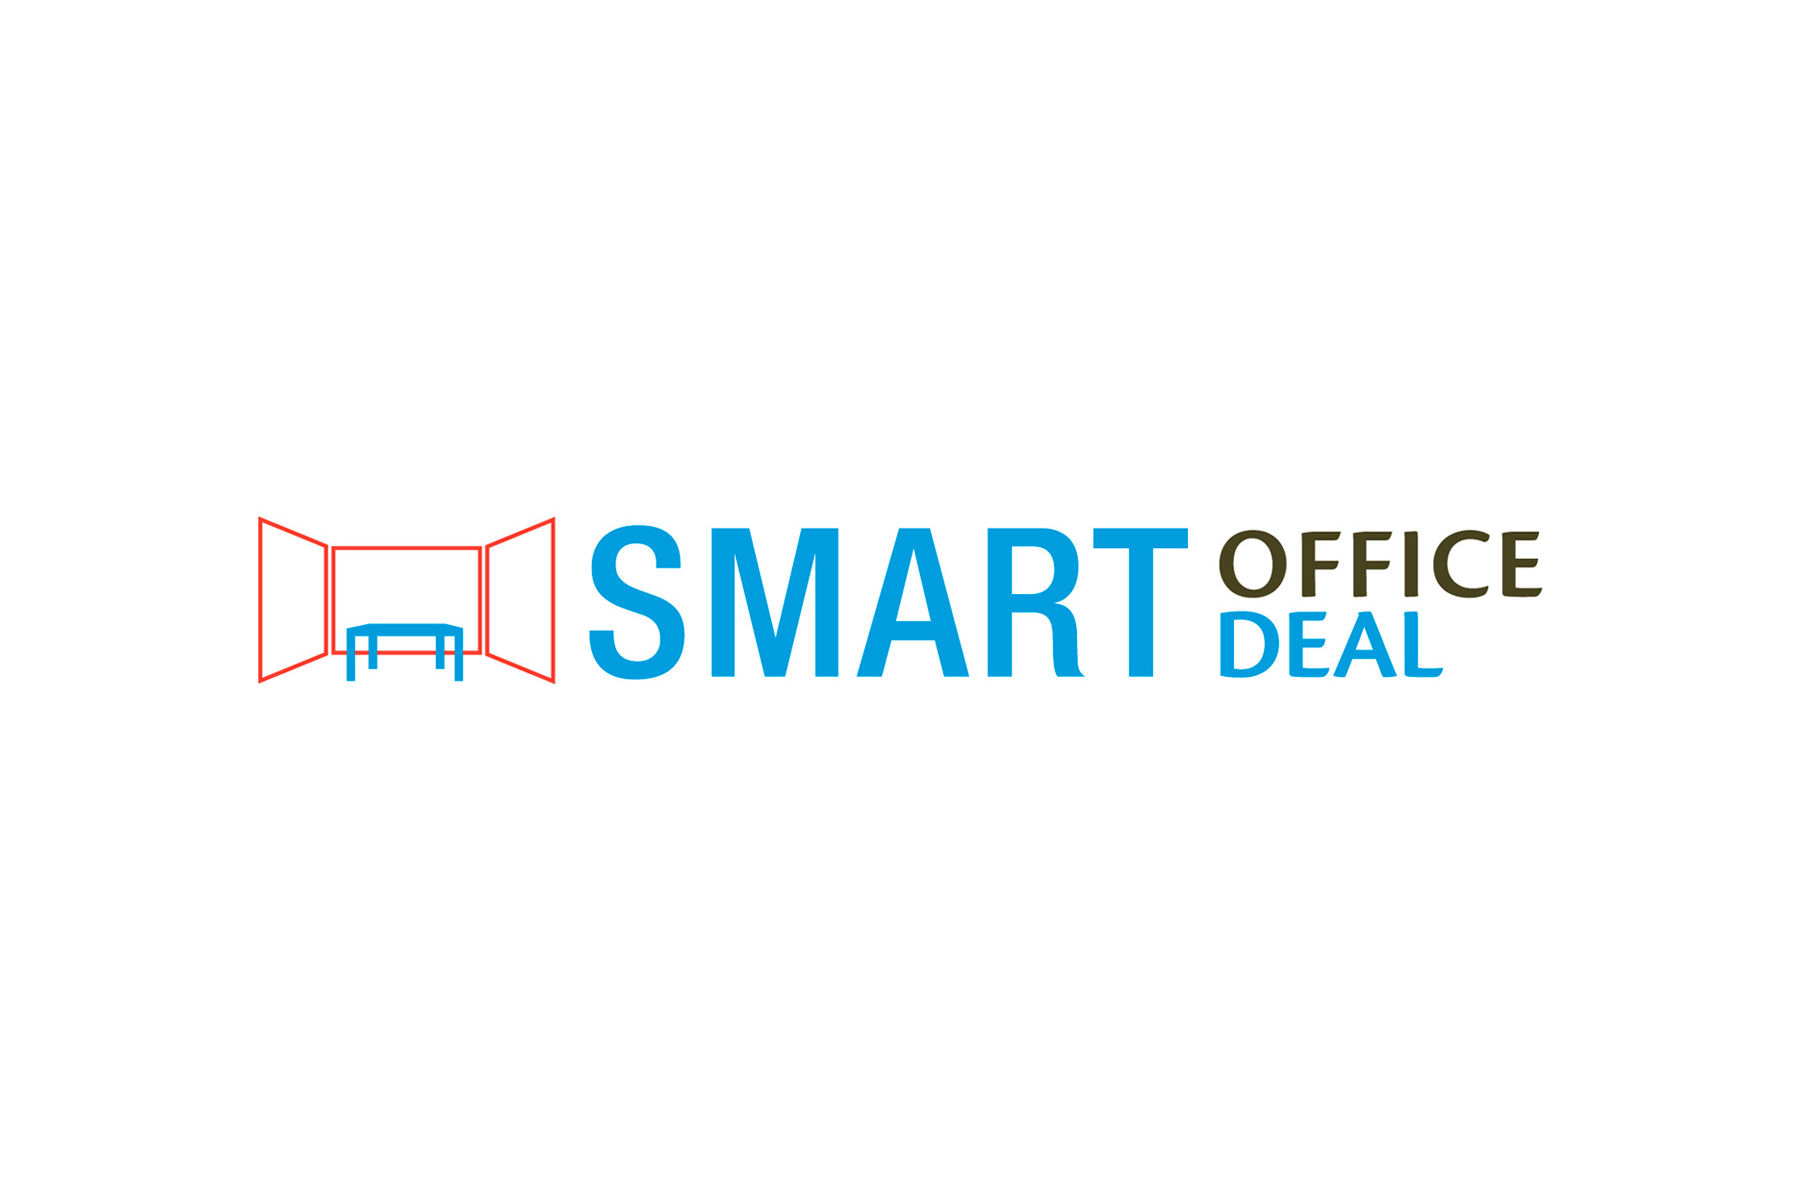 Smart Office Deal logo